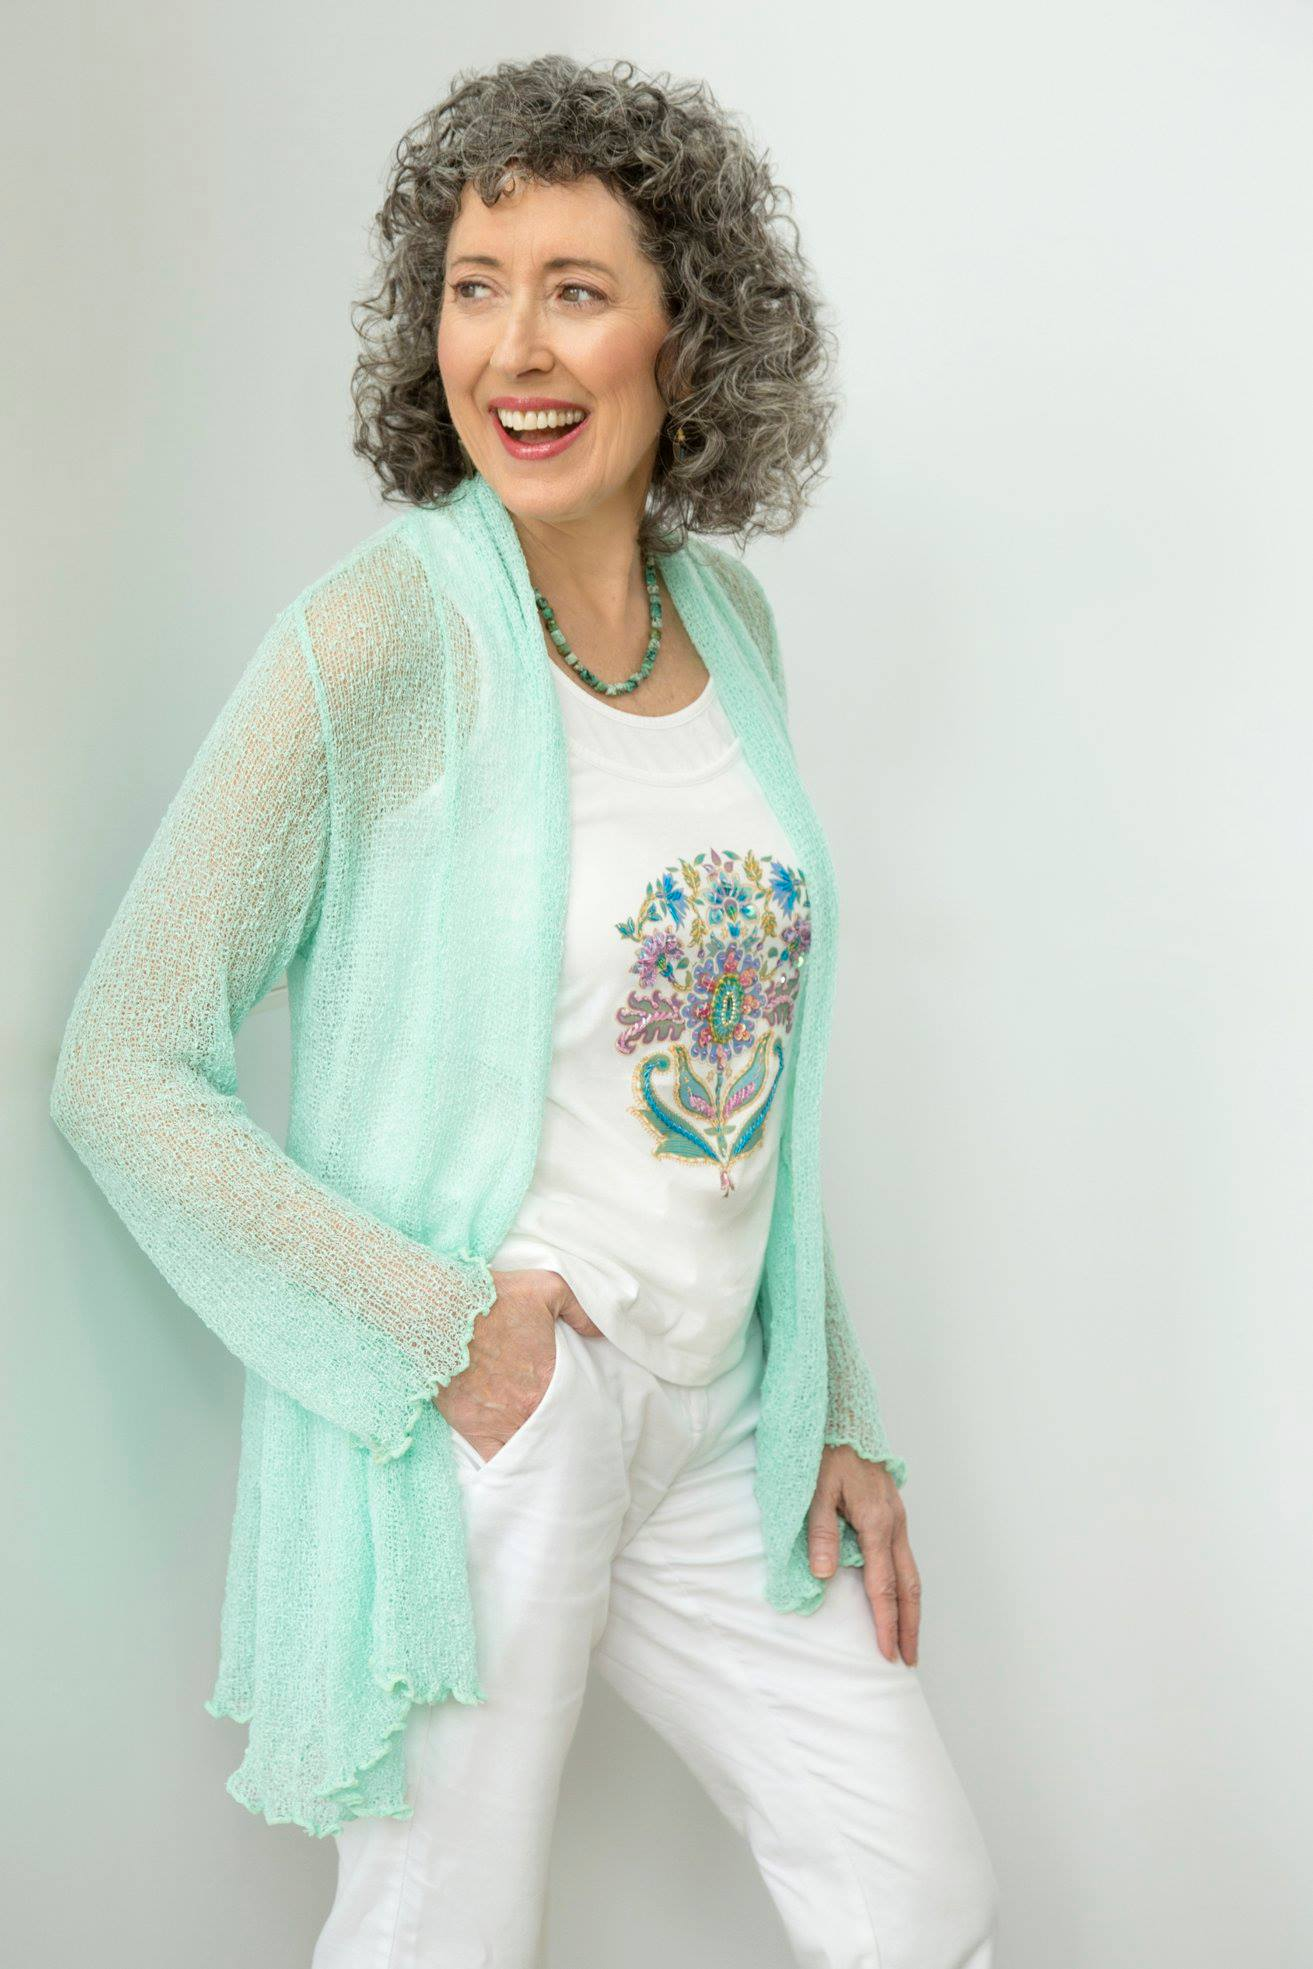 Joy Resor - Founder of joy on your shoulders, author, and spiritual mentor